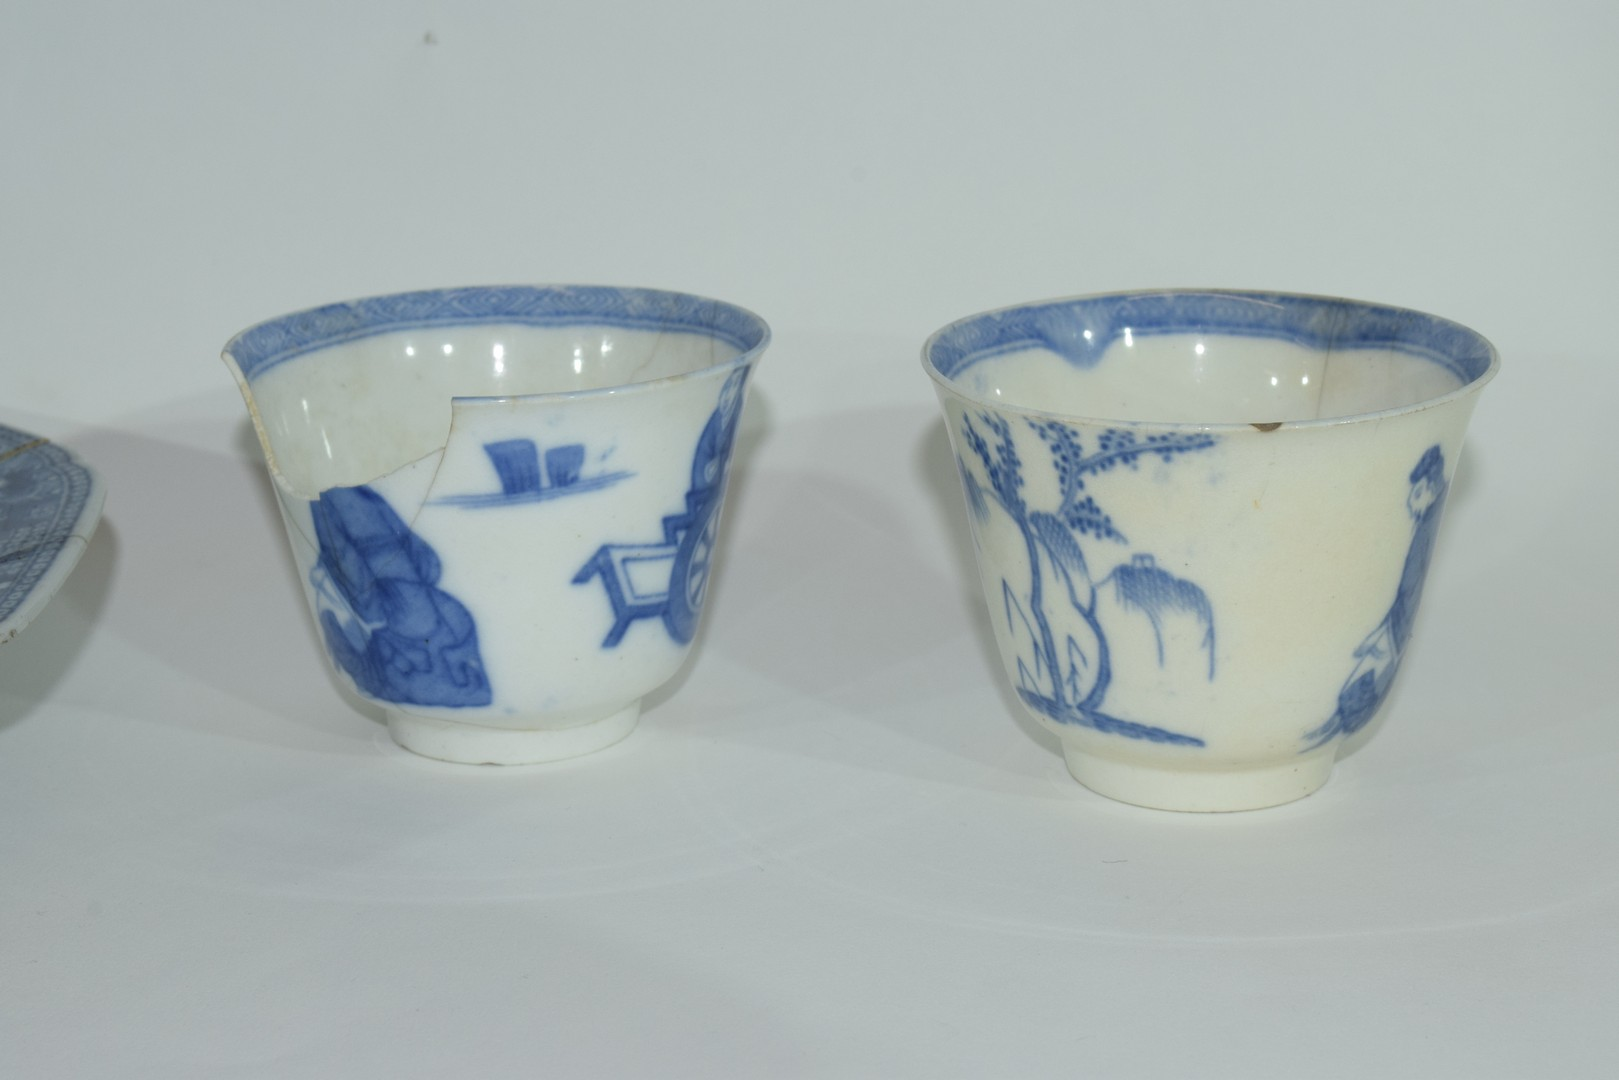 Group of Chinese export porcelain plates - Image 3 of 15